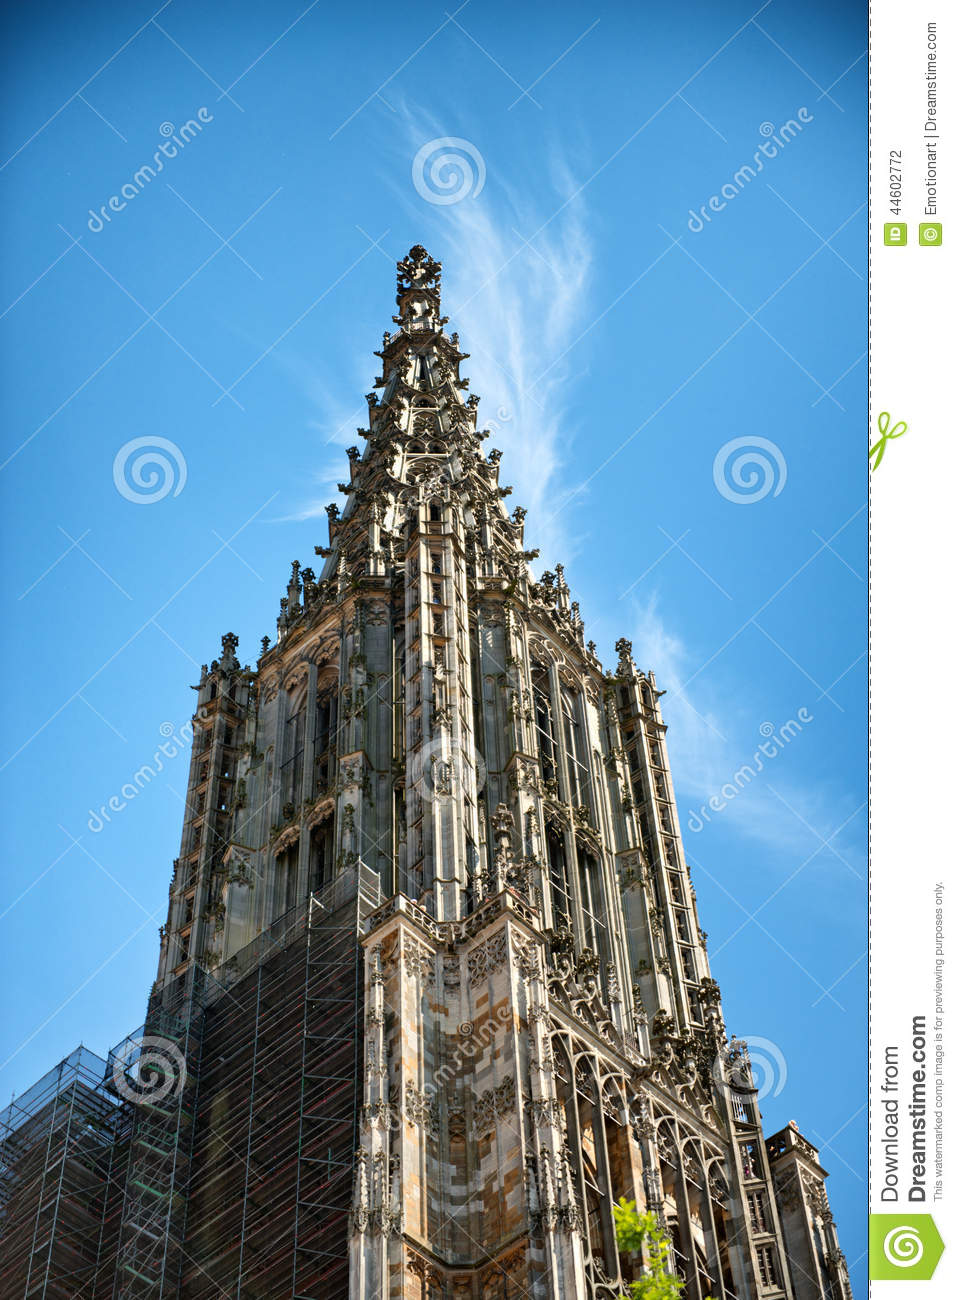 Ulmer Munster (Minster) Tower In Ulm, Germany Stock Photo.